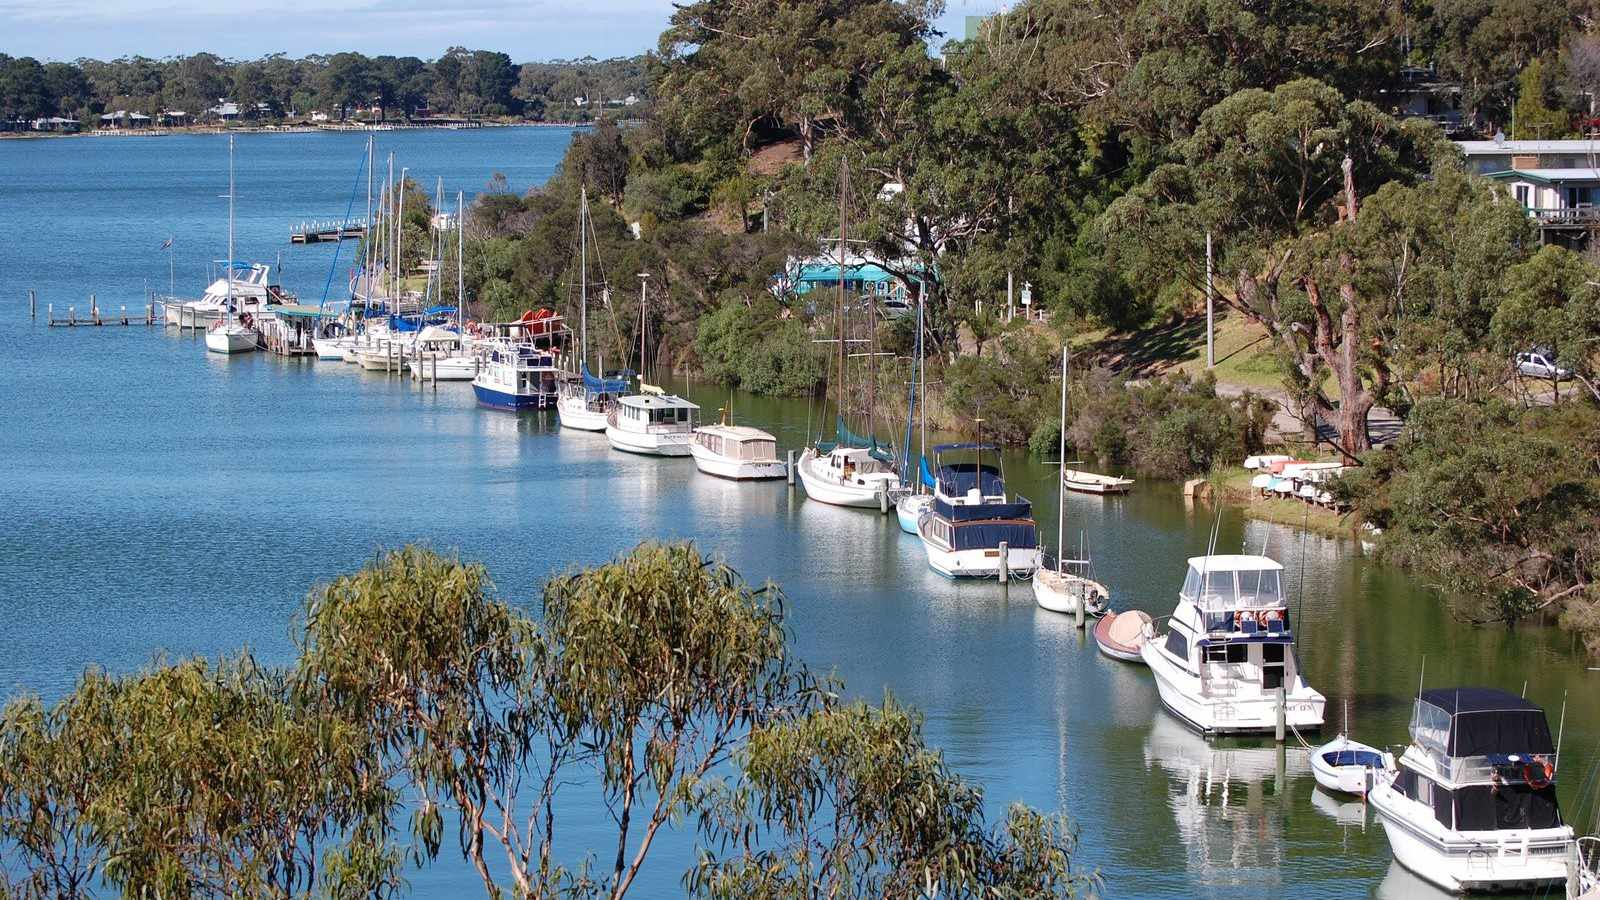 Boating and Sailing around the Gippsland Lakes